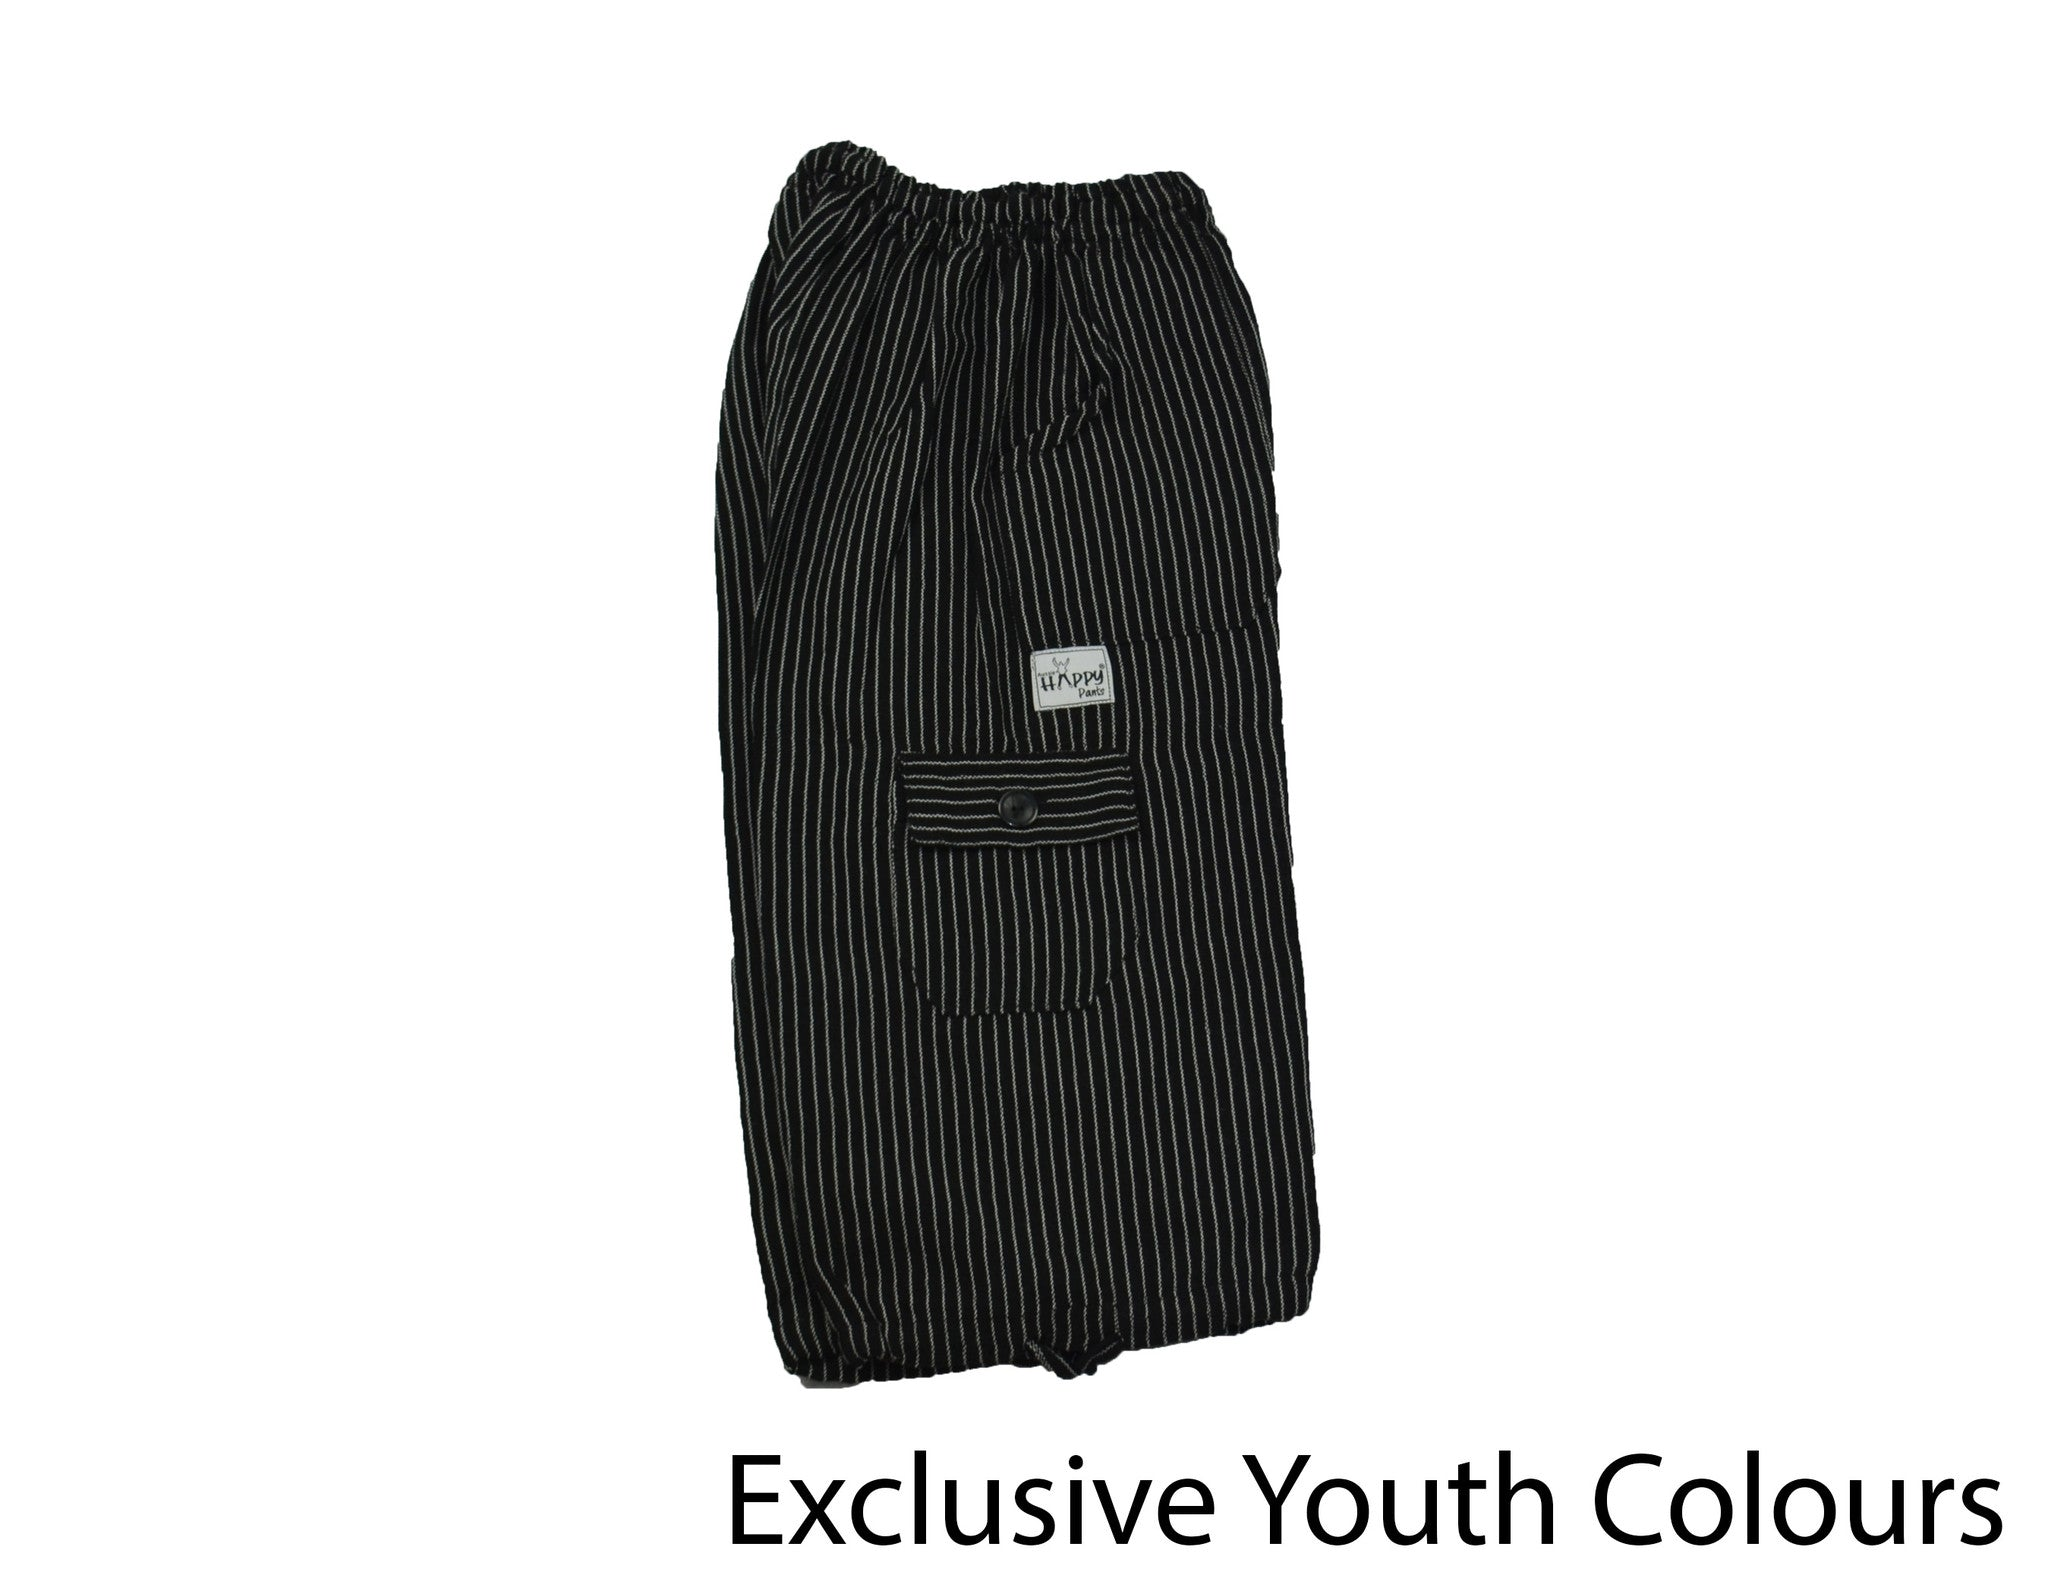 Black Youth Boardshorts - Happy Pants